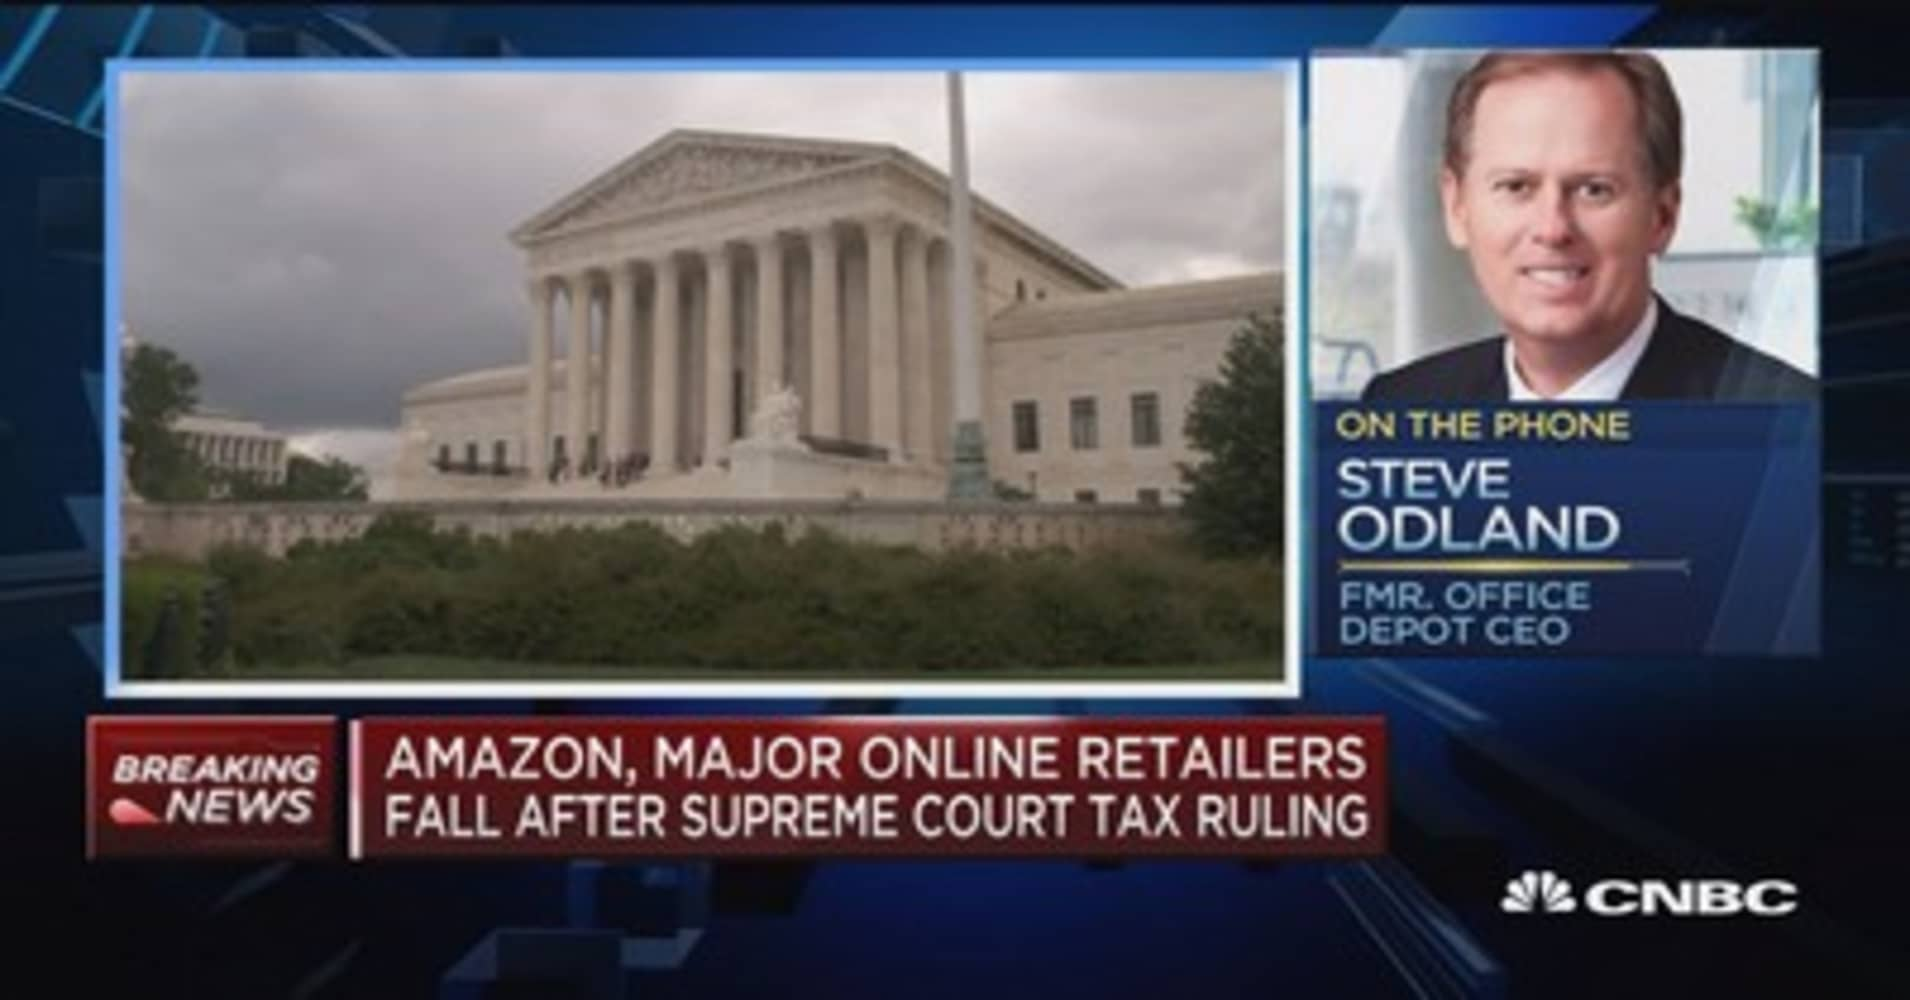 Scotus internet tax decision levels the playing field says former scotus internet tax decision levels the playing field says former office depot ceo malvernweather Image collections